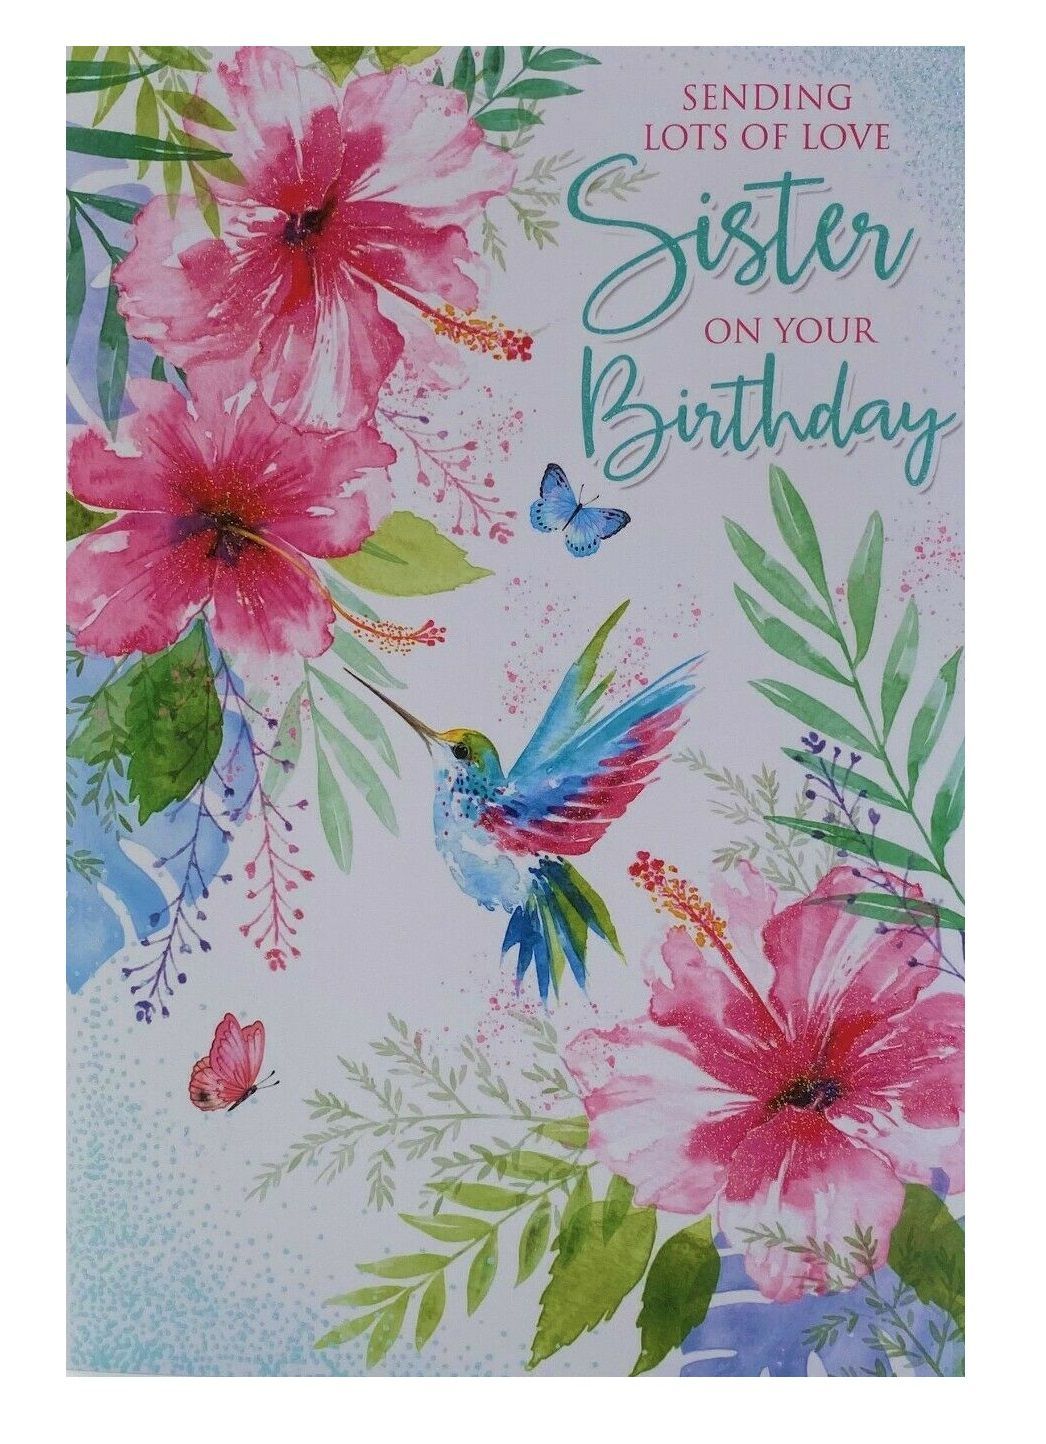 Sending Lots Of Love Sister On Your Birthday